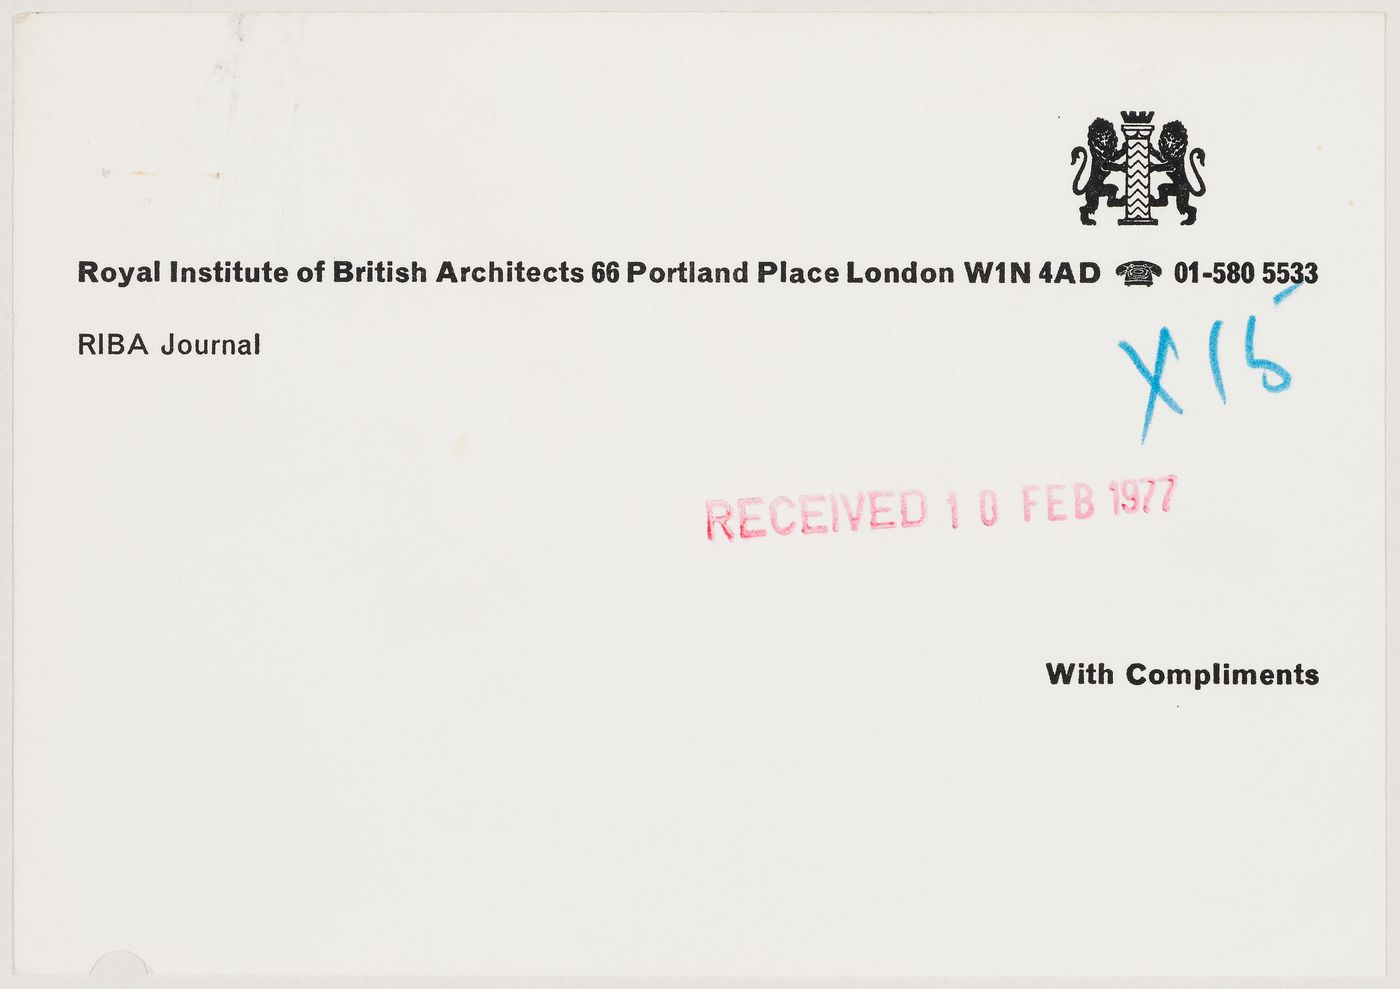 Compliments slip issued by the Royal Institute of British Architects (document from Westpen project records)